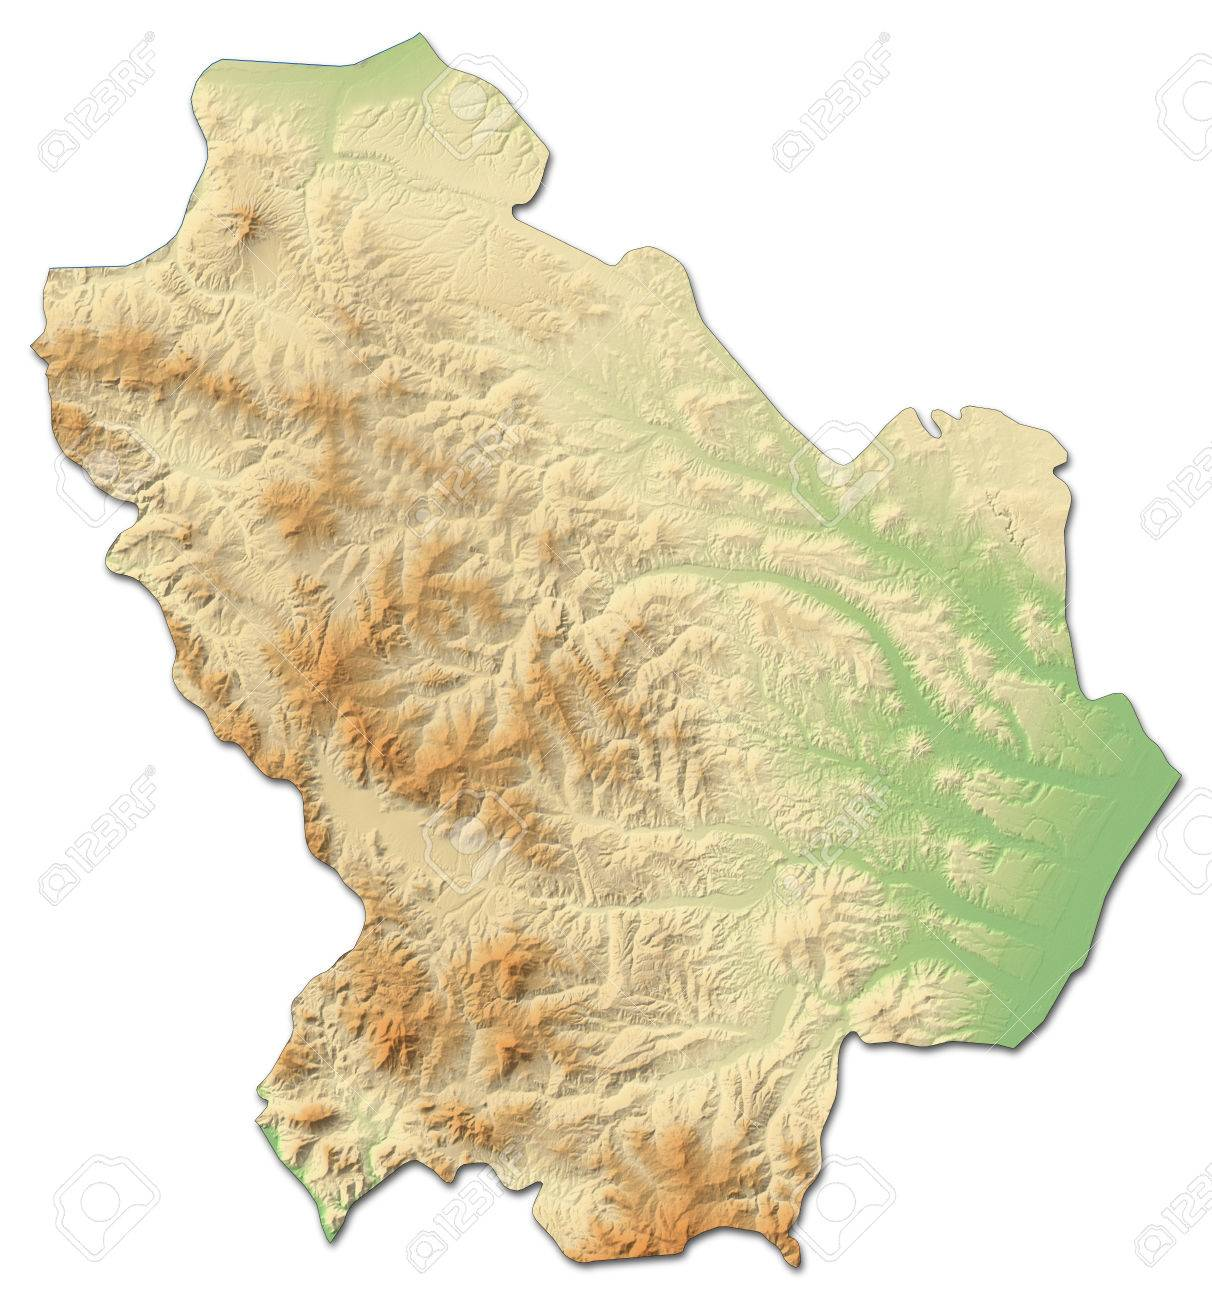 Relief Map Of Basilicata A Province Of Italy With Shaded Relief